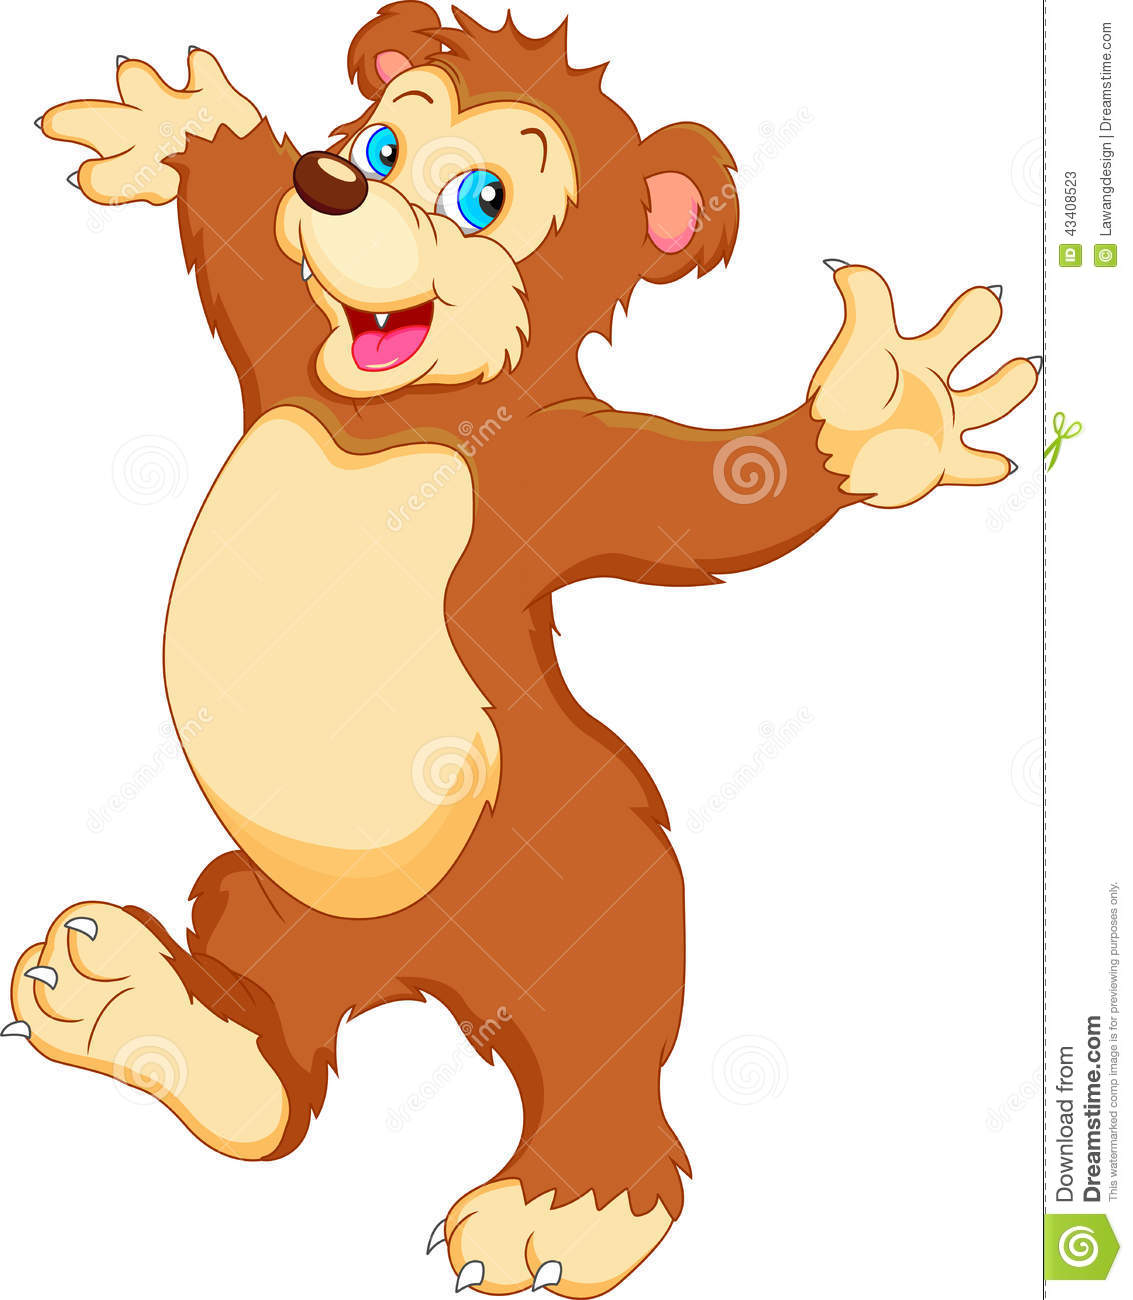 Bear Illustration  Download Free Vector Art Stock